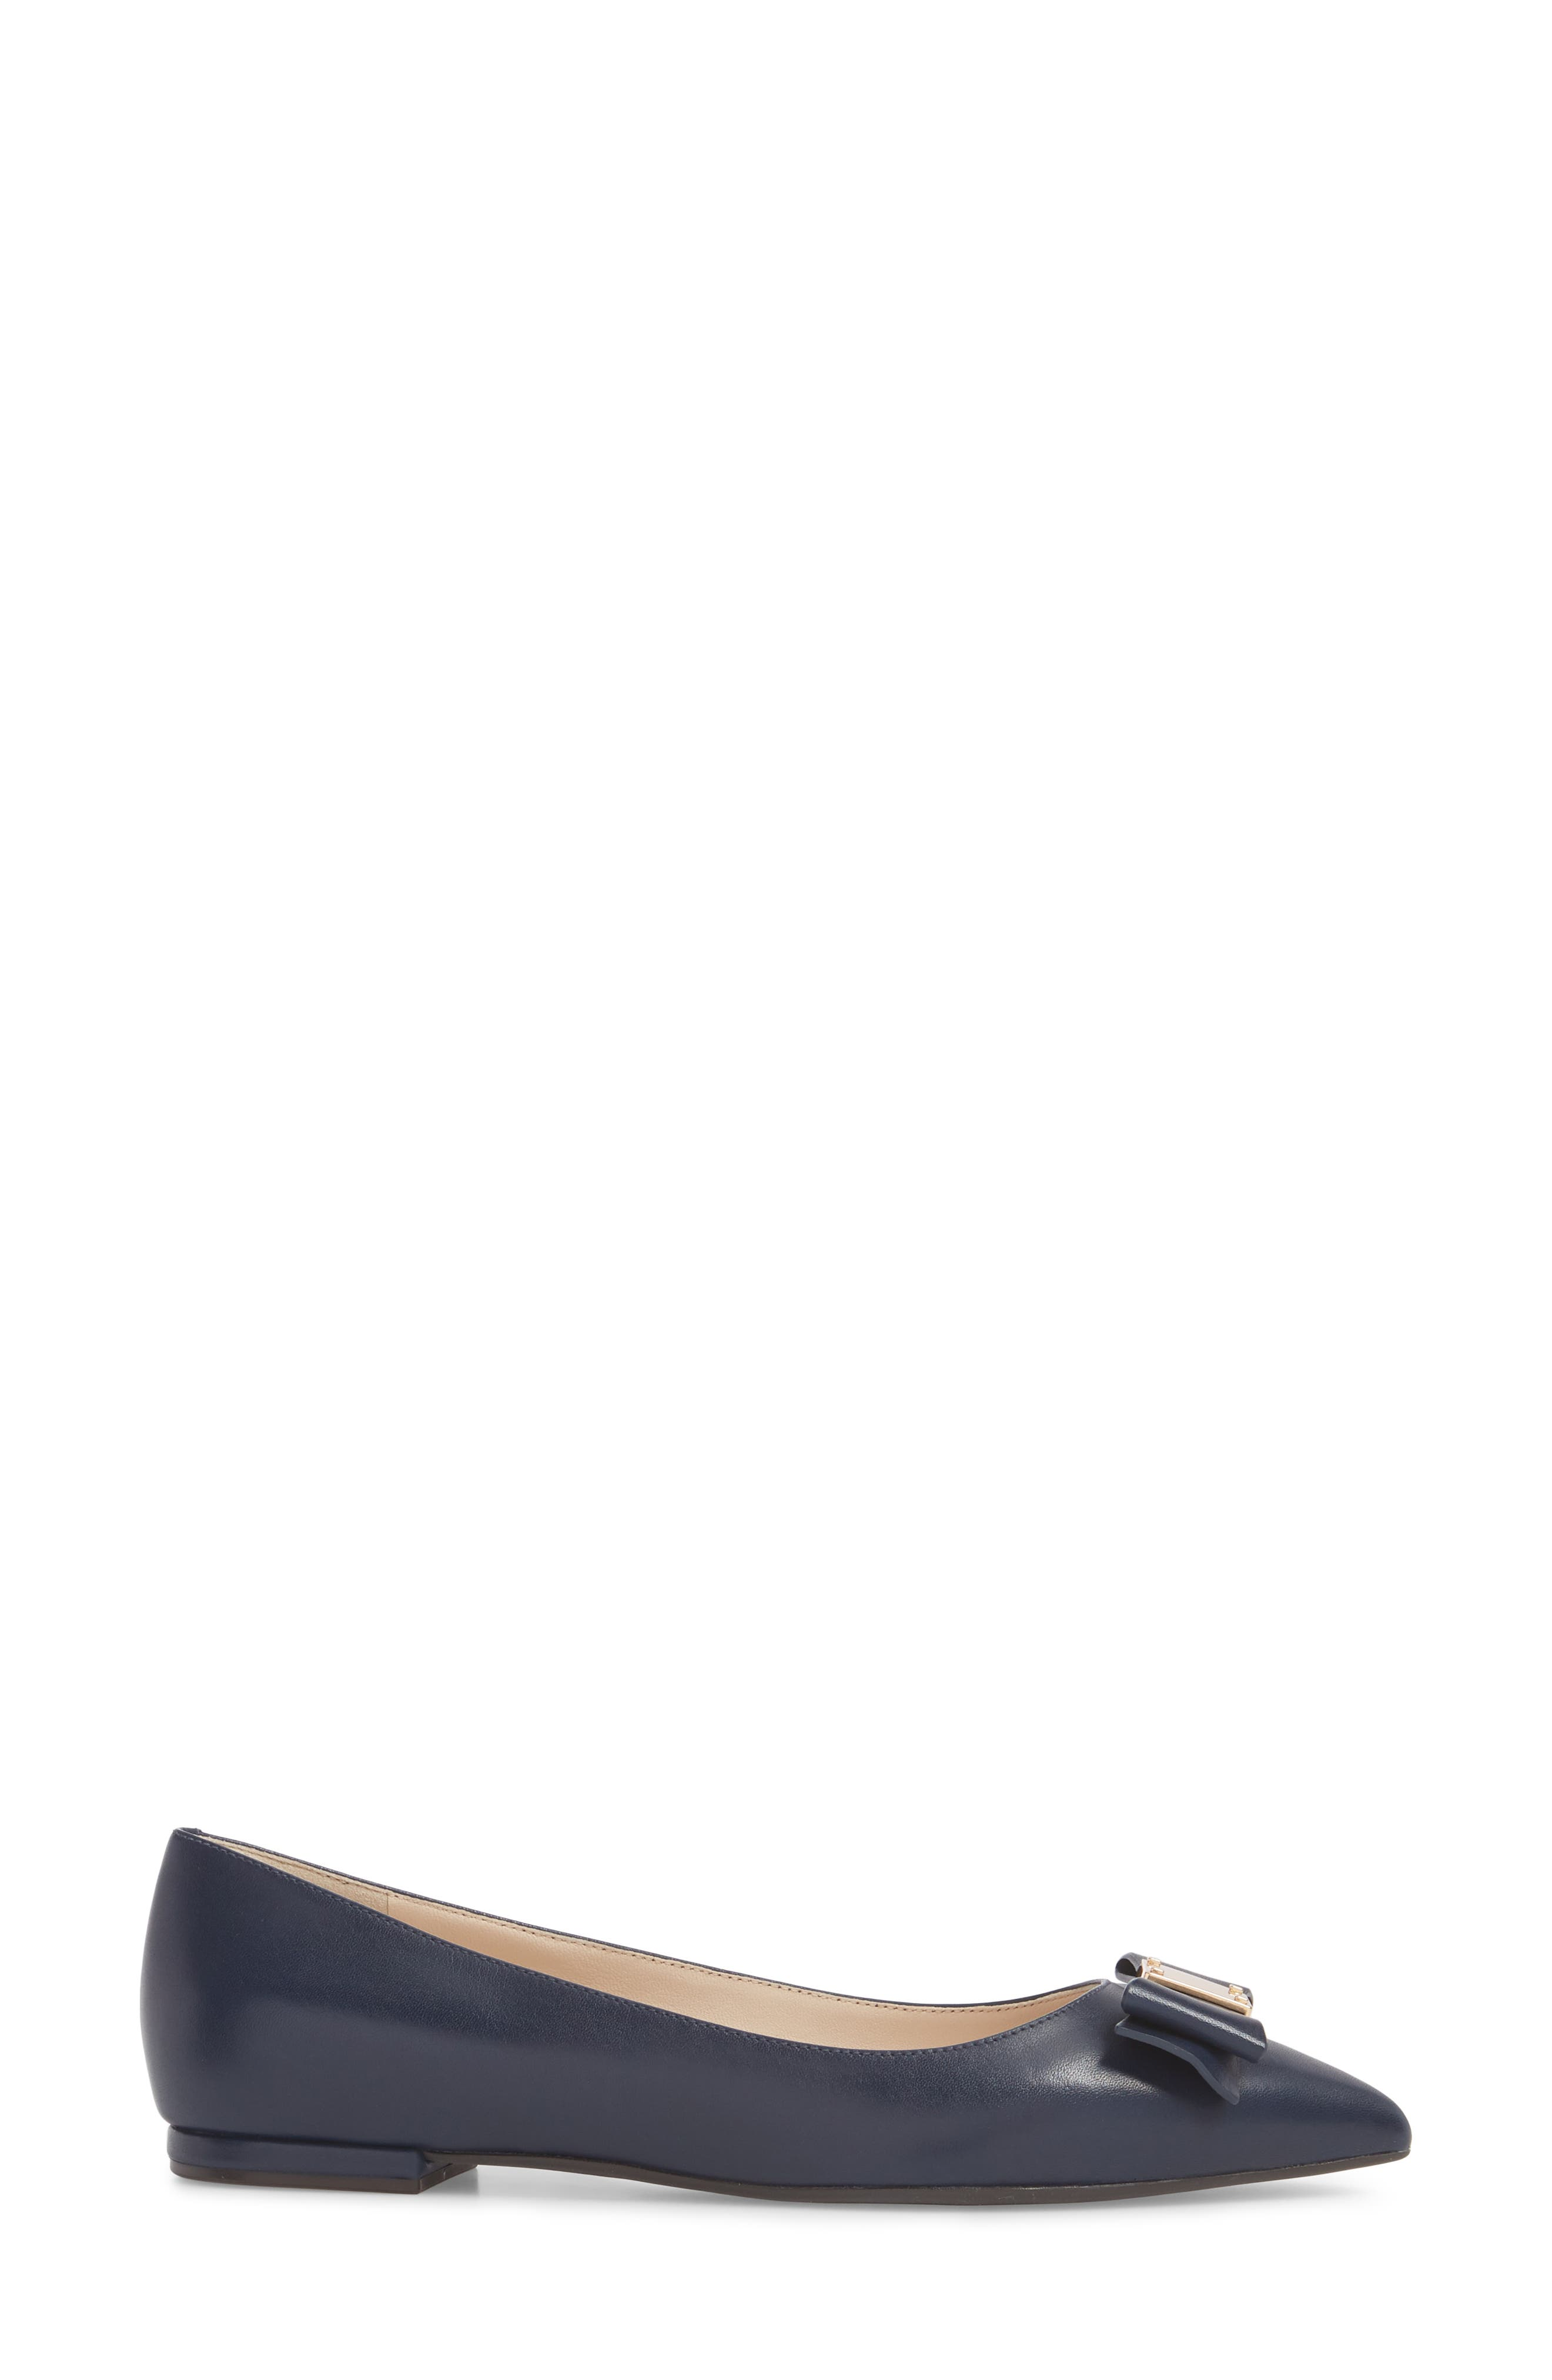 COLE HAAN,                             Tali Bow Skimmer Flat,                             Alternate thumbnail 3, color,                             400